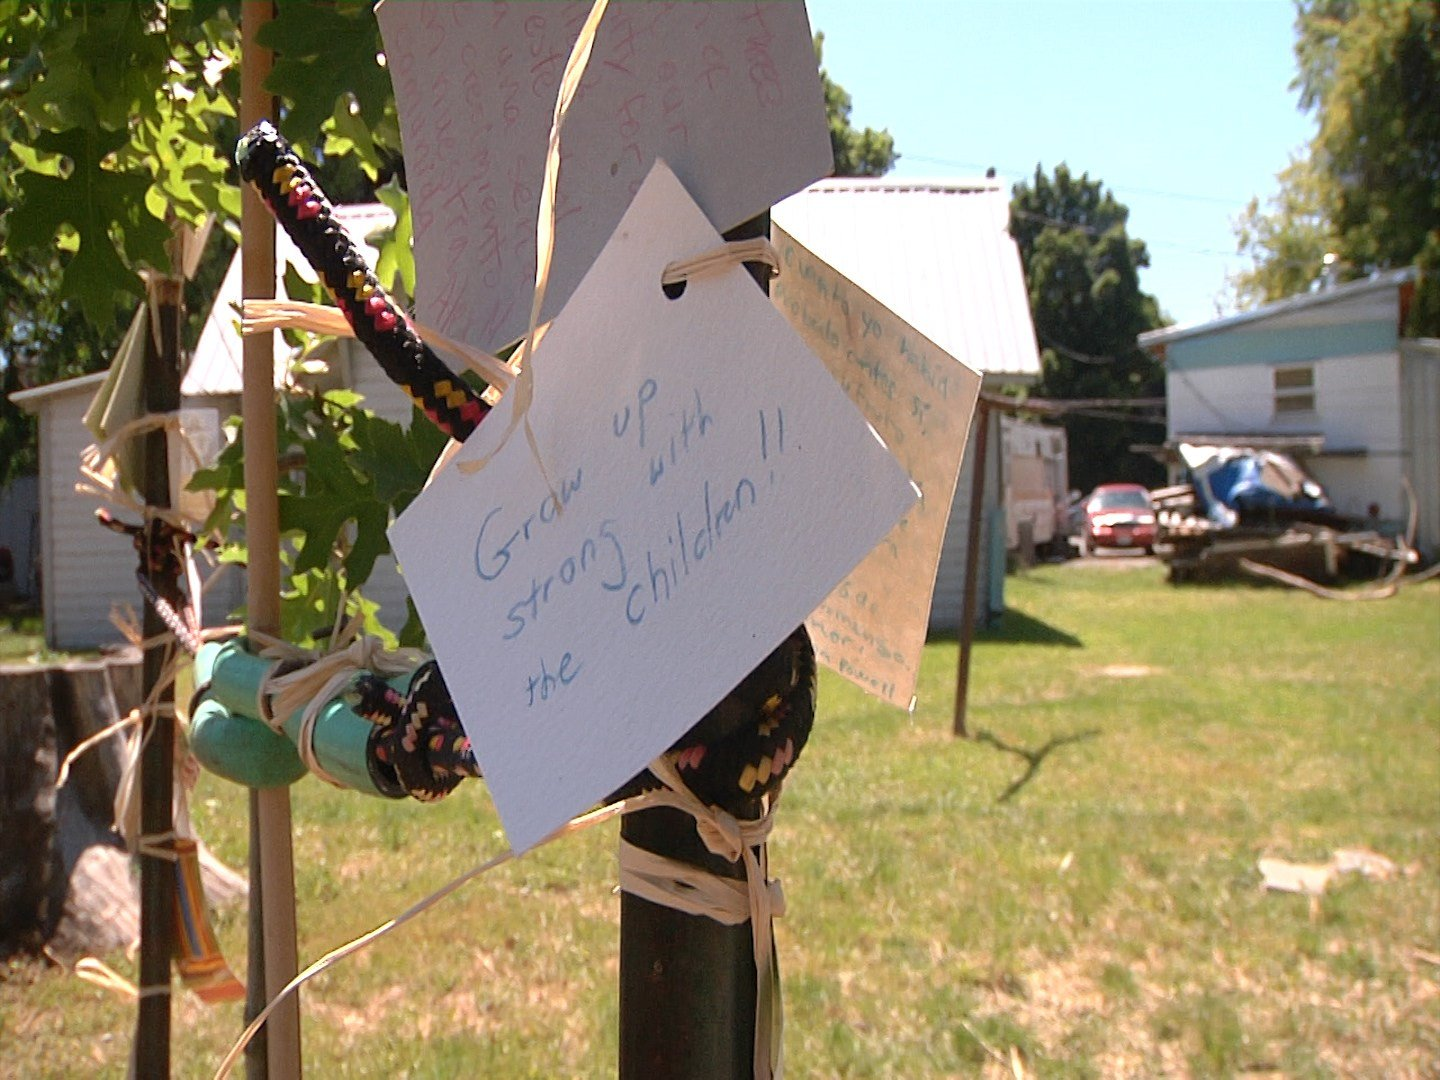 Dozens of people may have to leave Shady Acres in search for a new place to call home.